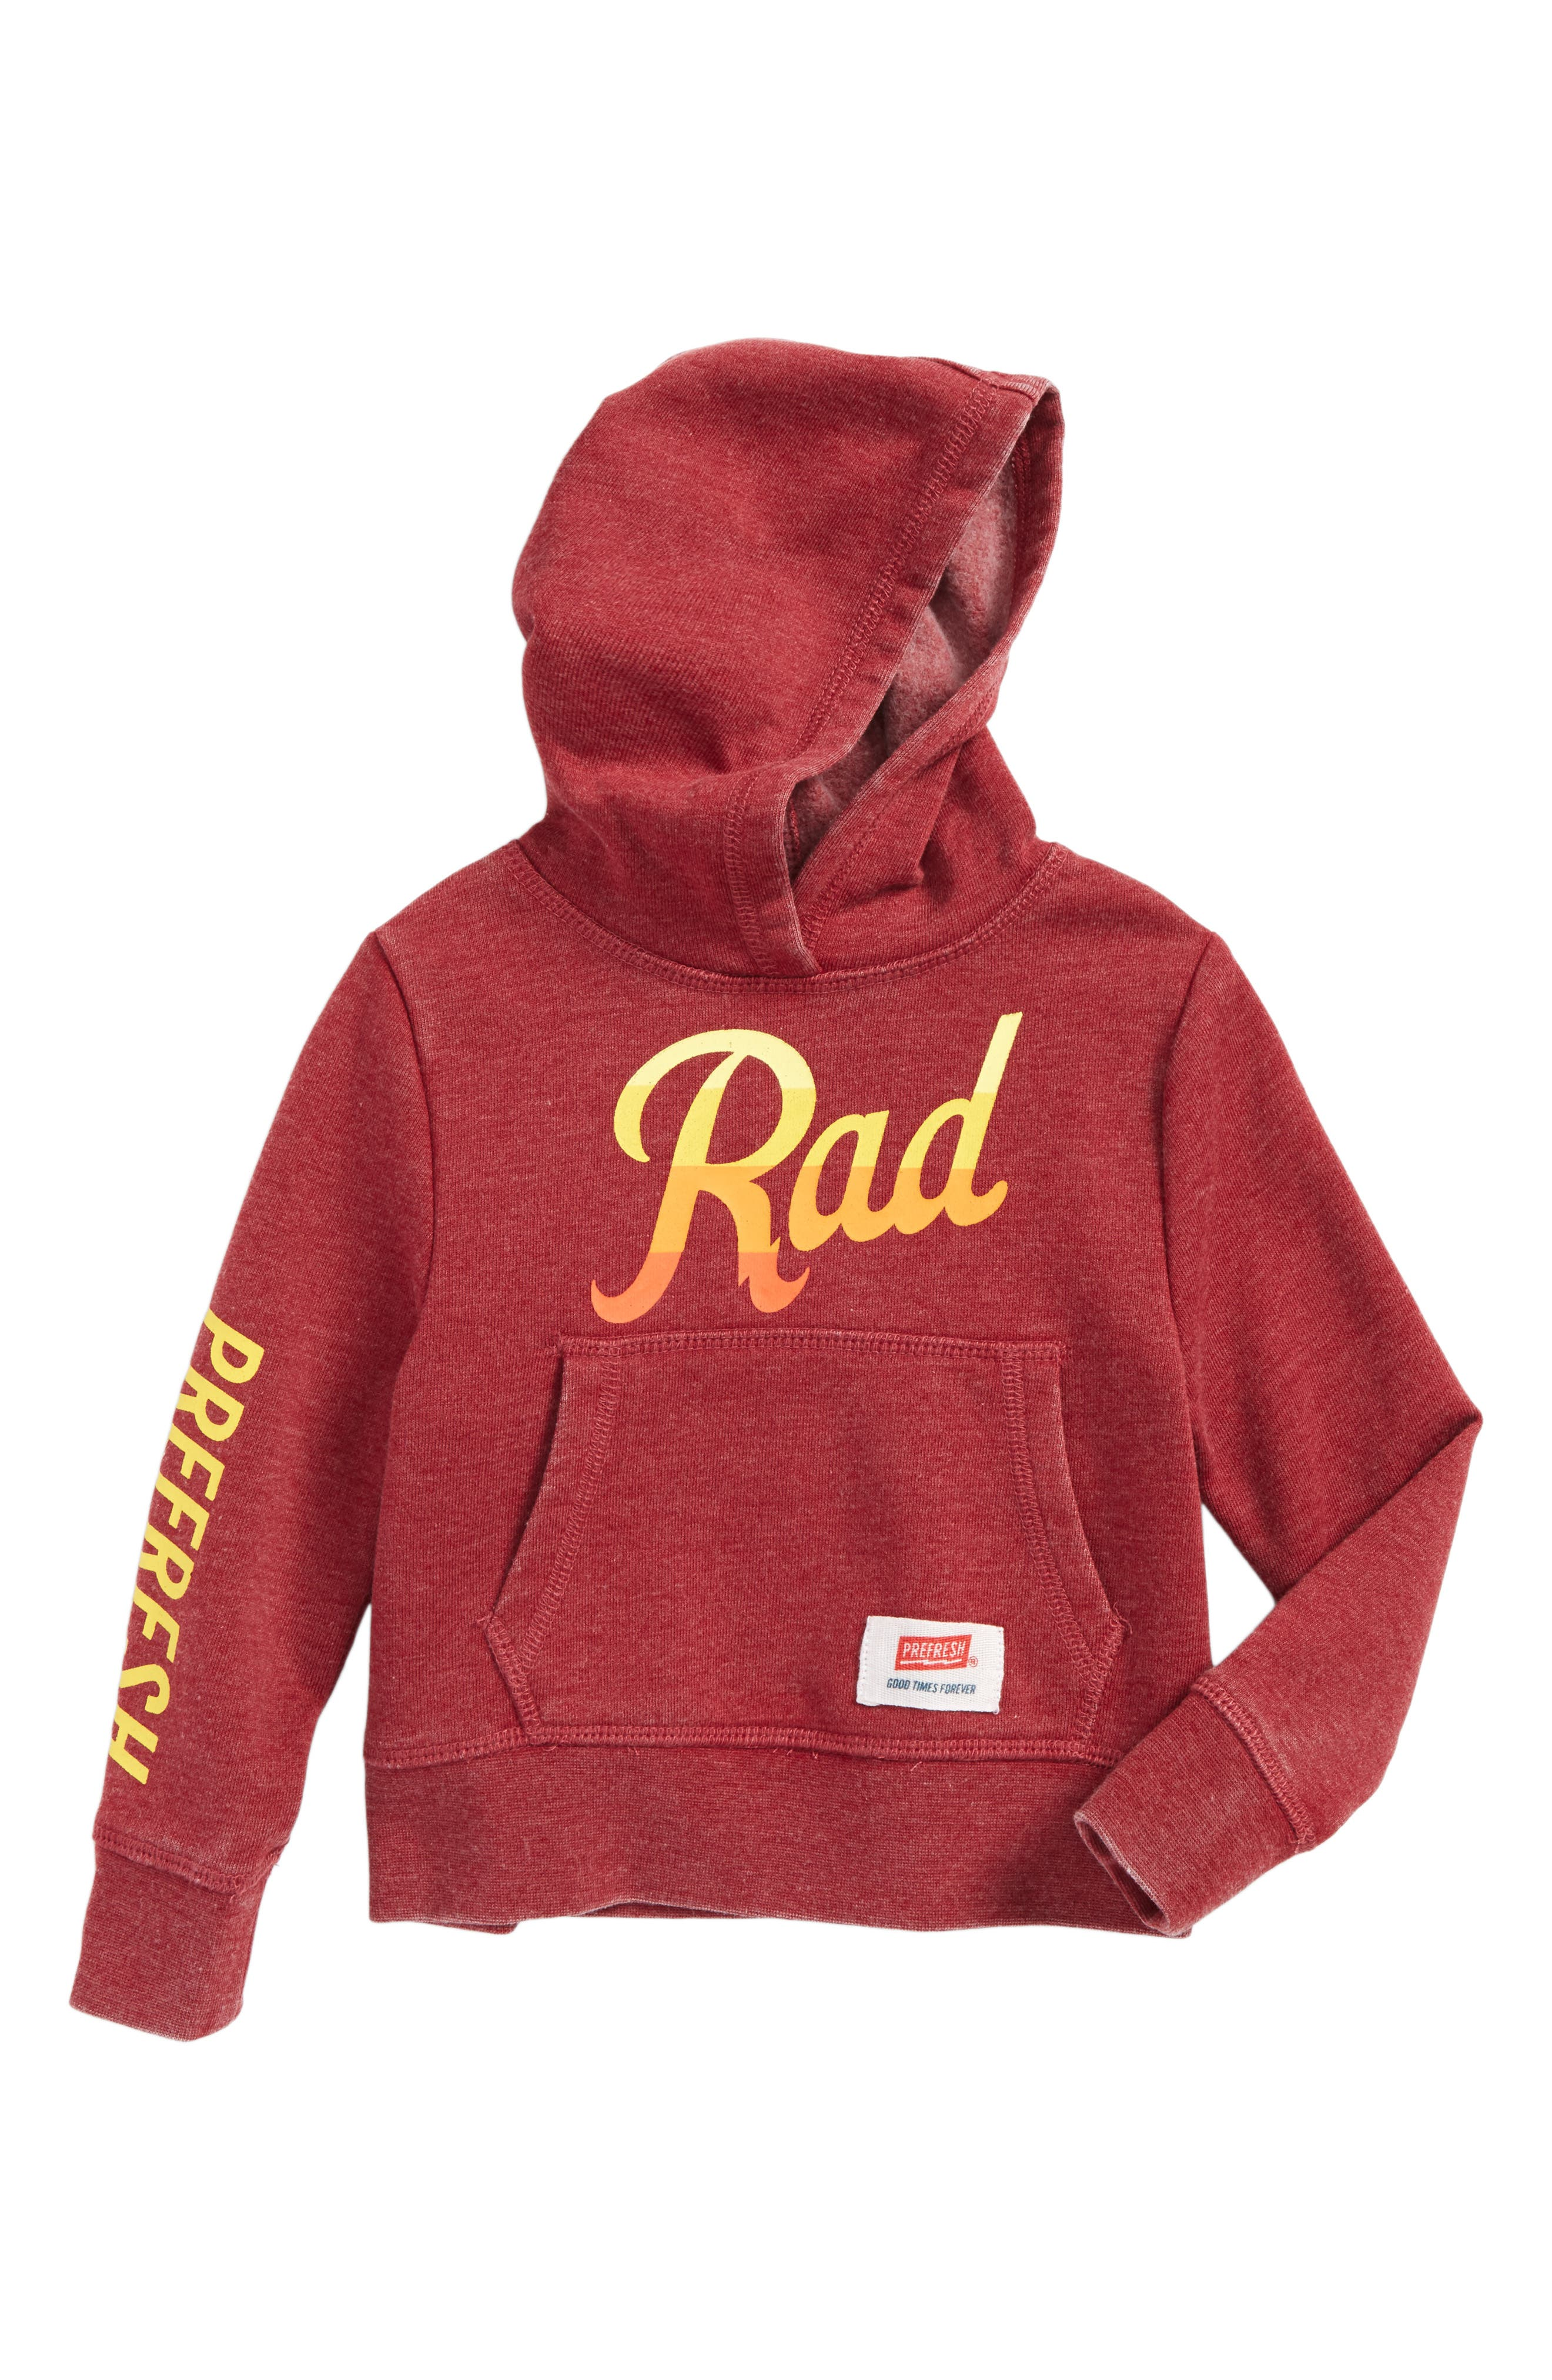 Prefresh Rad Graphic Hoodie (Baby Boys)